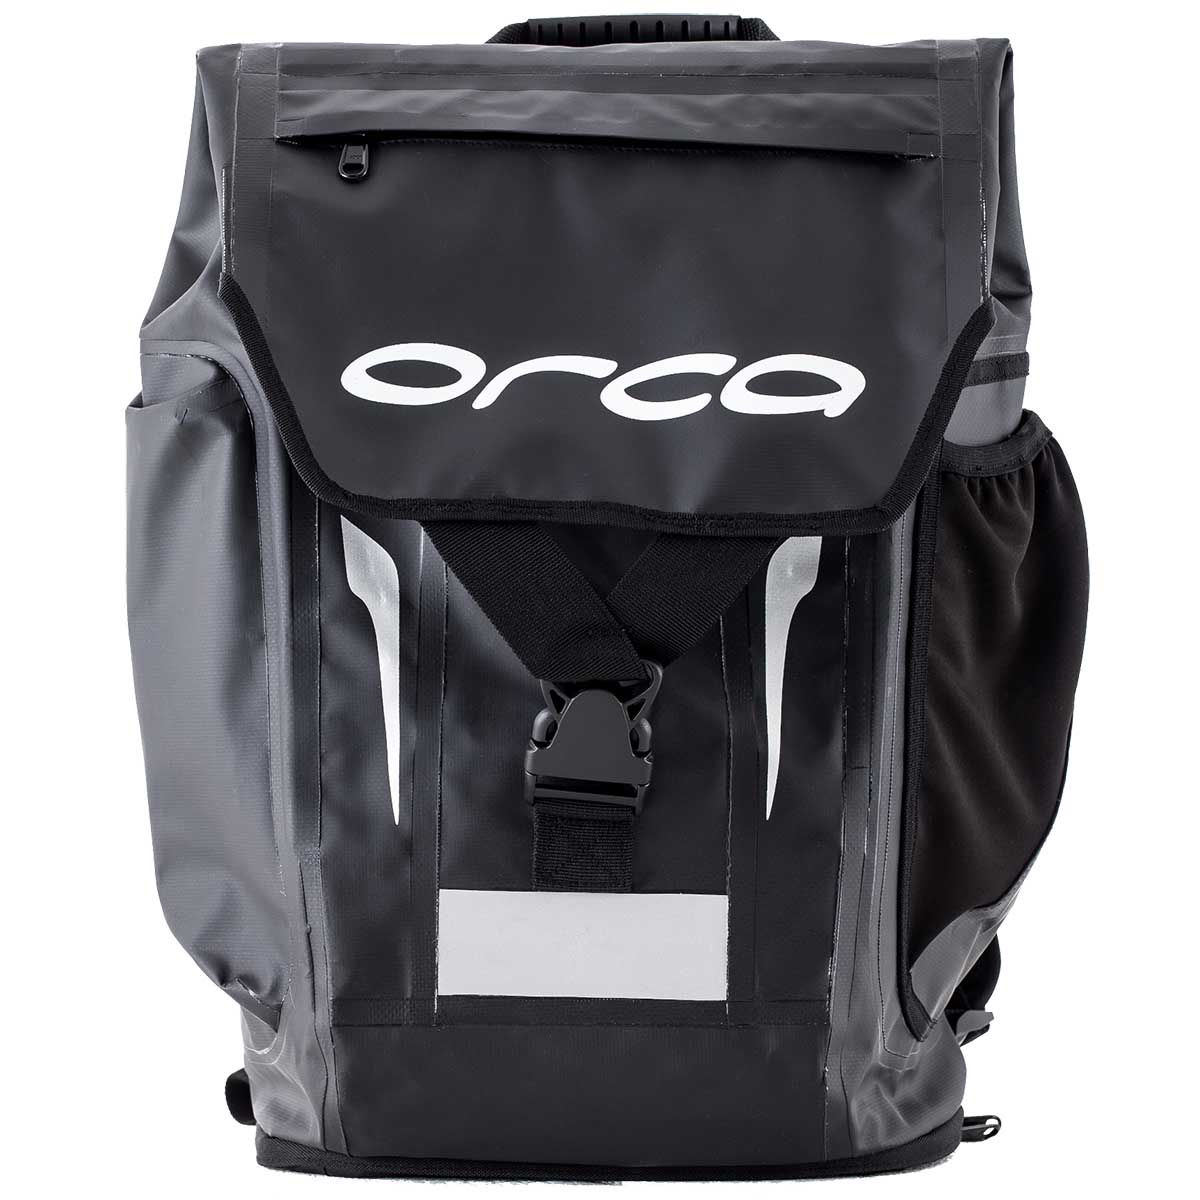 sacs dos orca urban waterproof backpack wiggle france. Black Bedroom Furniture Sets. Home Design Ideas